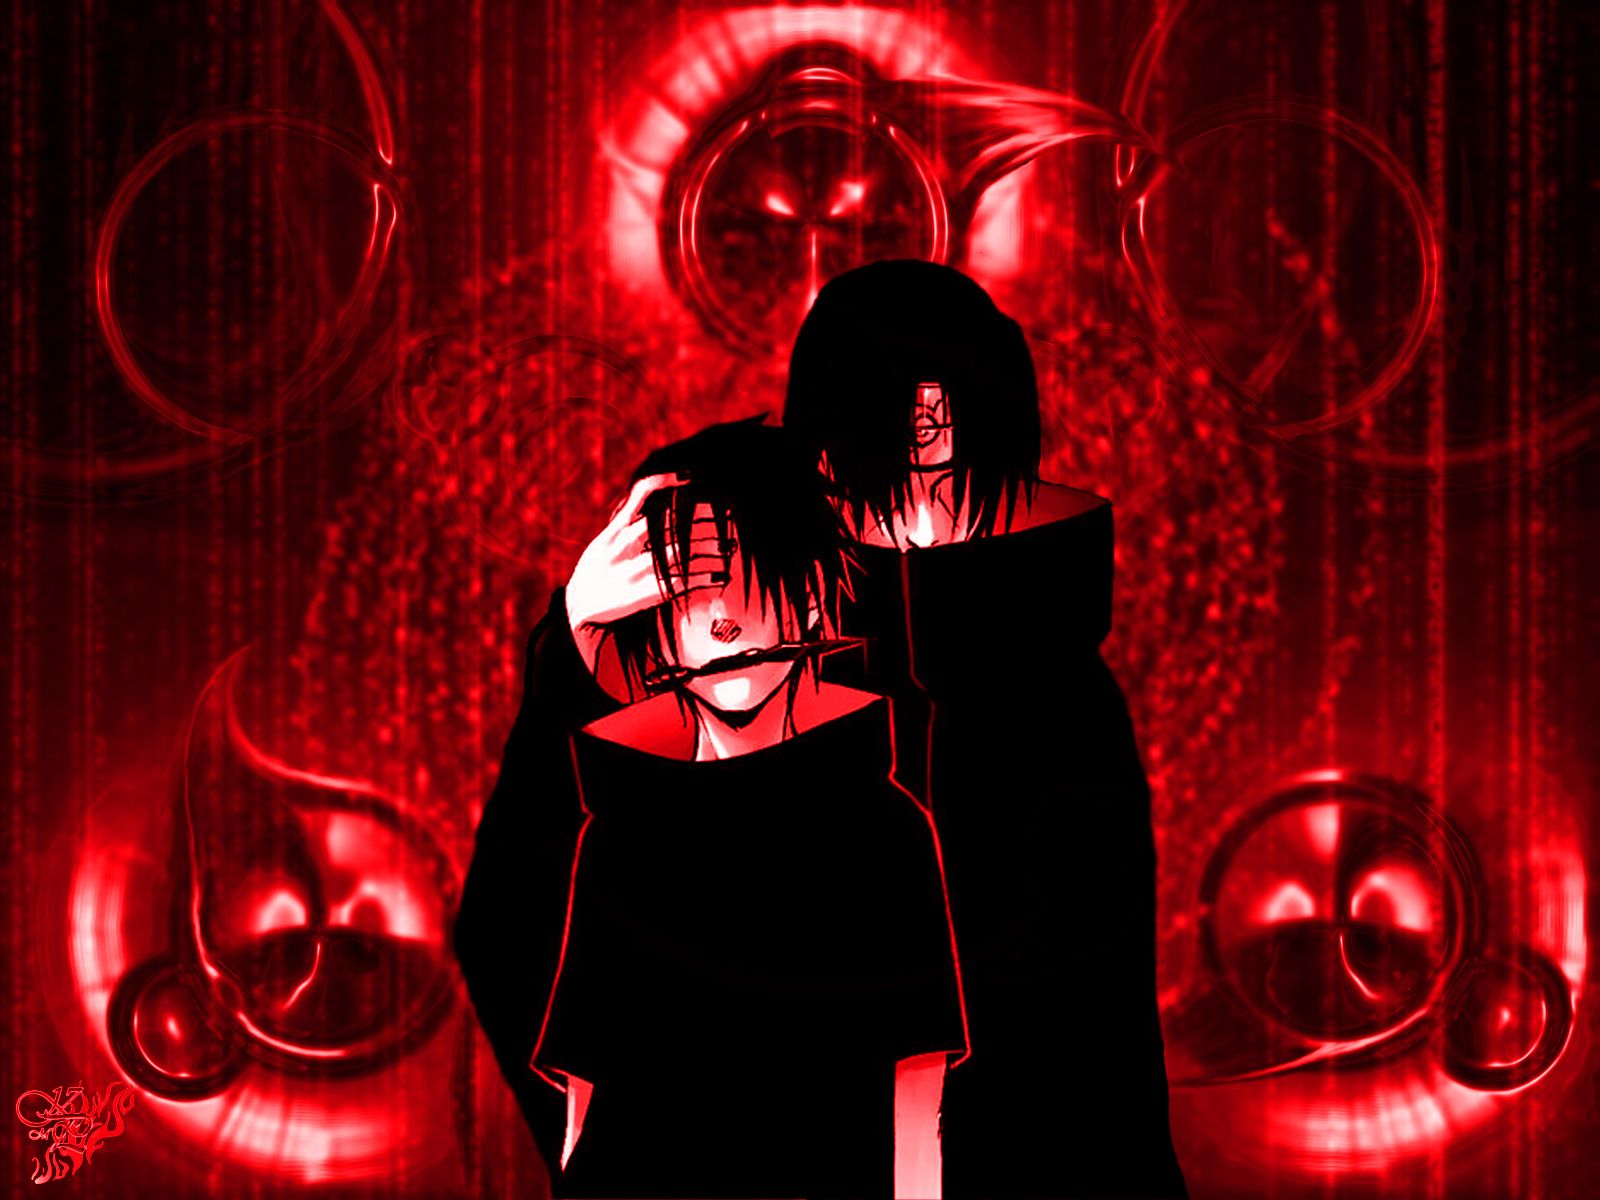 Sasuke Uchiha Sharingan Wallpaper For Android Hd Anime Wallpapers Itachi Uchiha Naruto And Sasuke Wallpaper